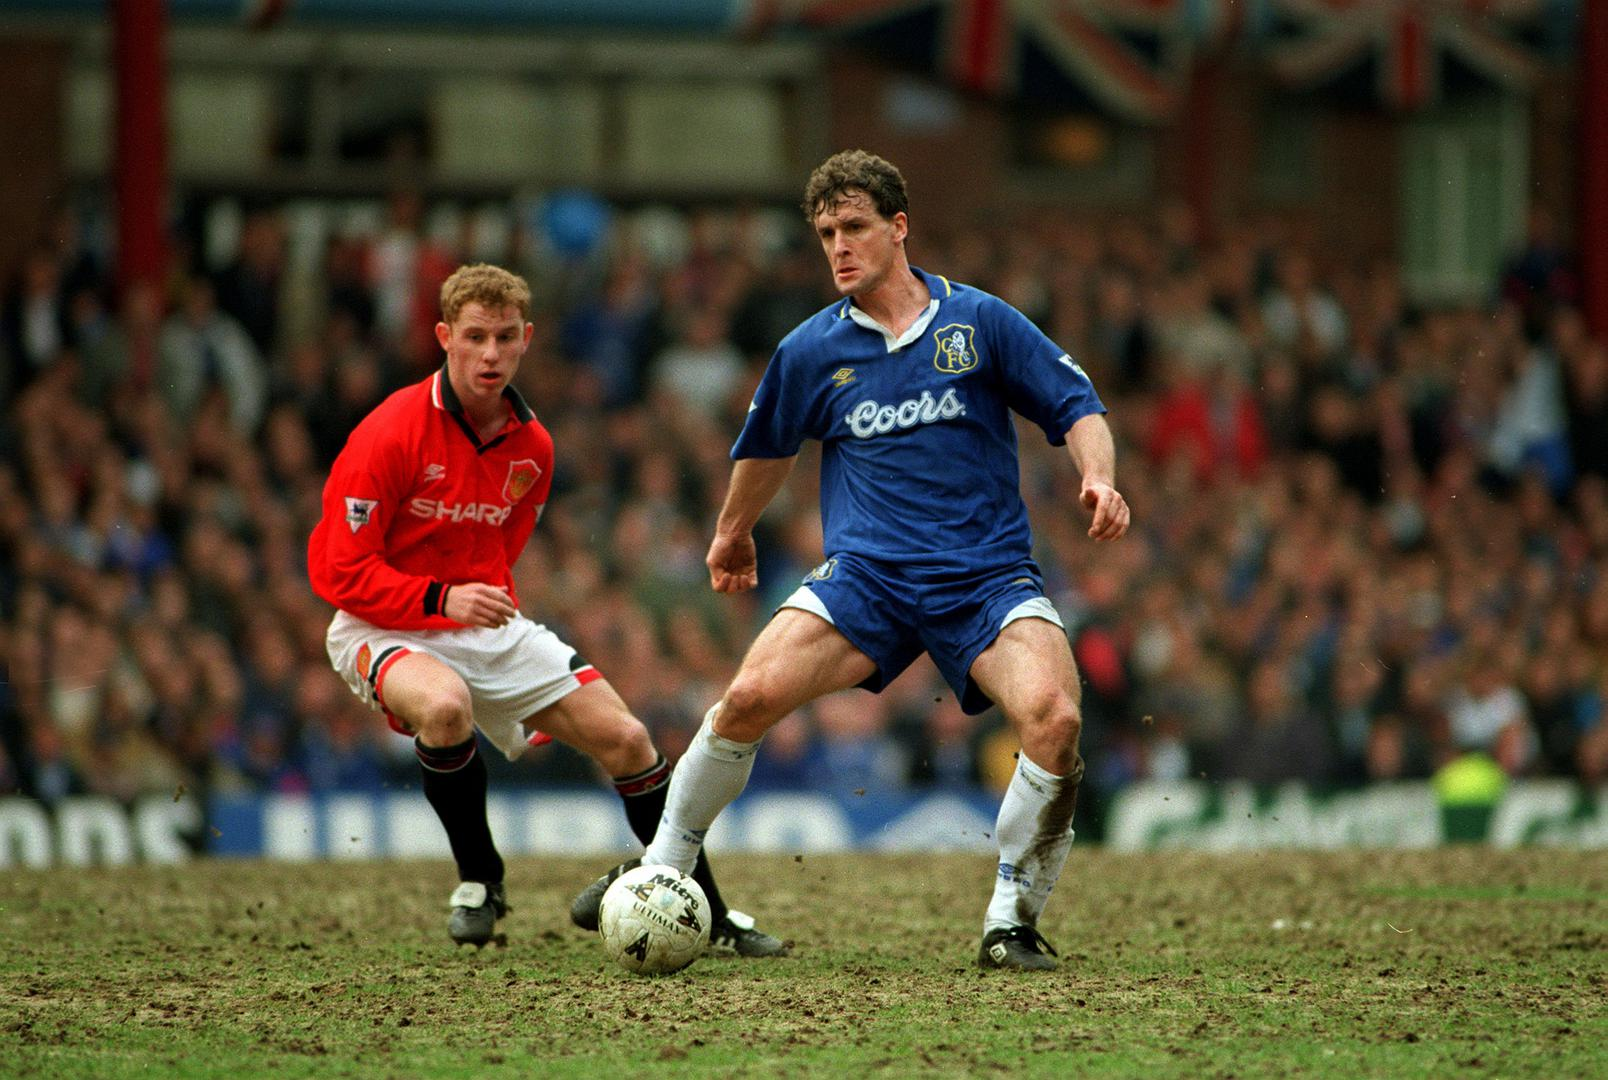 Nicky Butt in action for Manchester United against Mark Hughes of Chelsea.